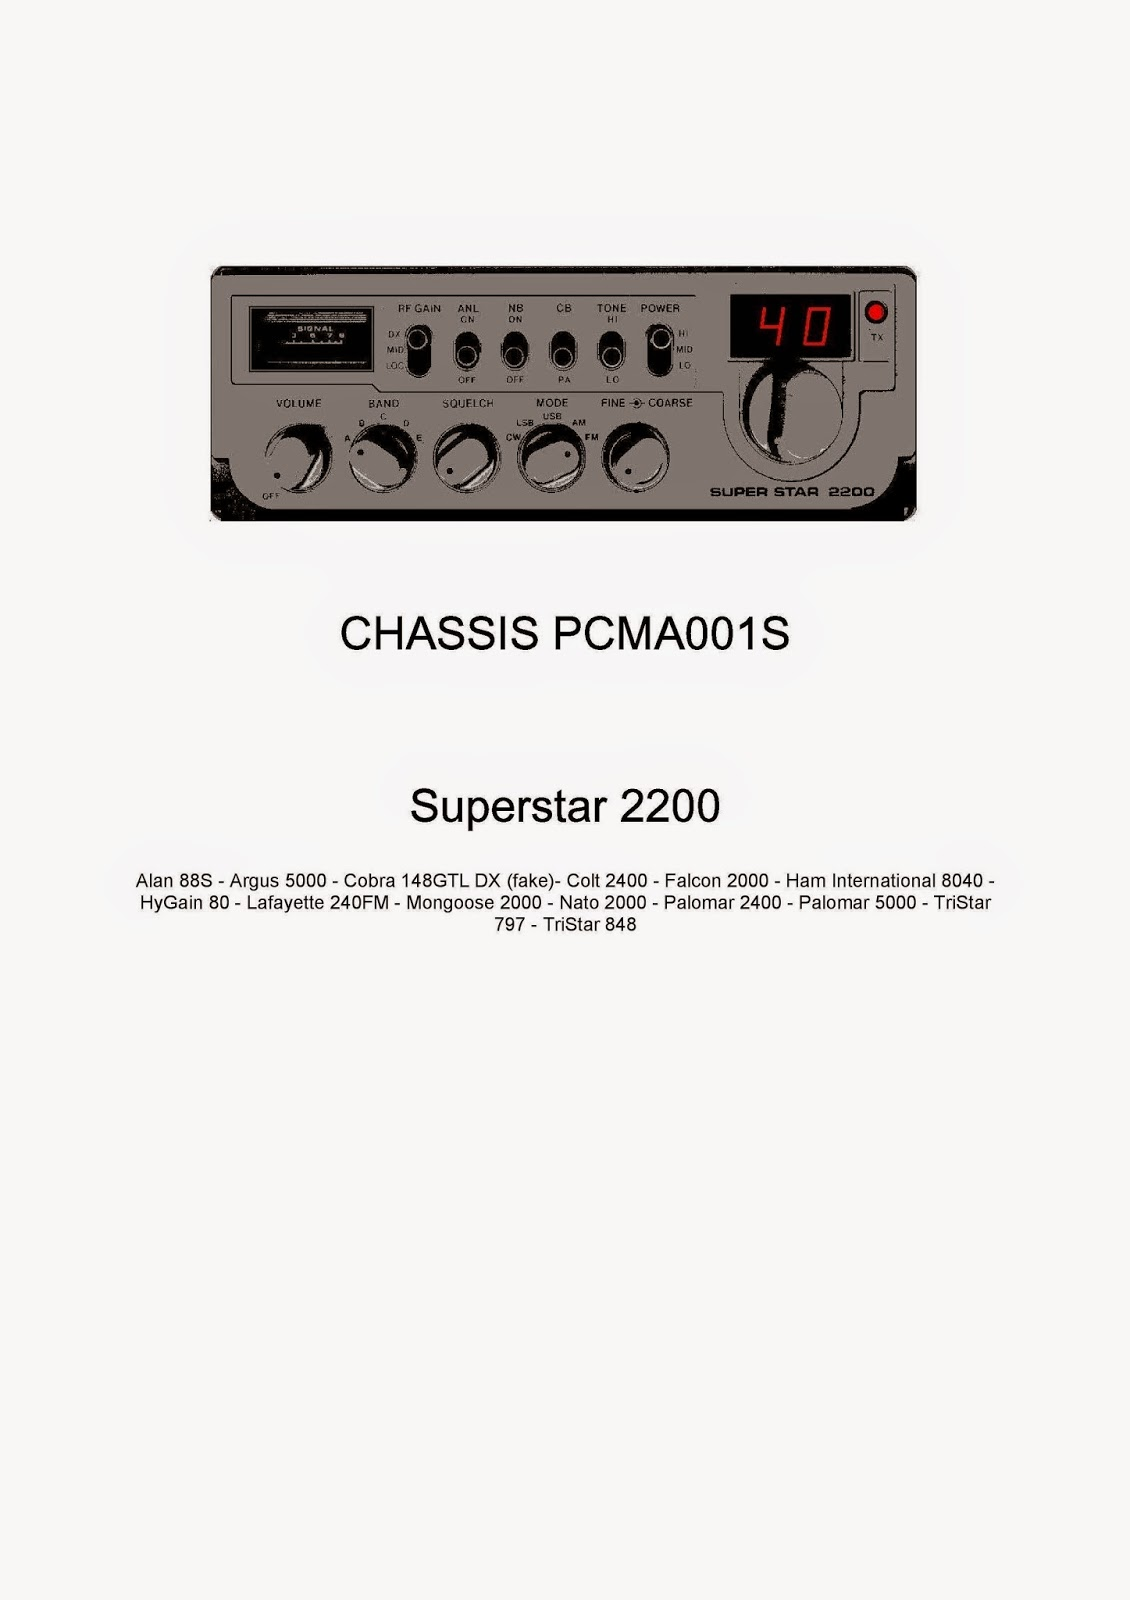 Superstar 2200 service manual pcma001s